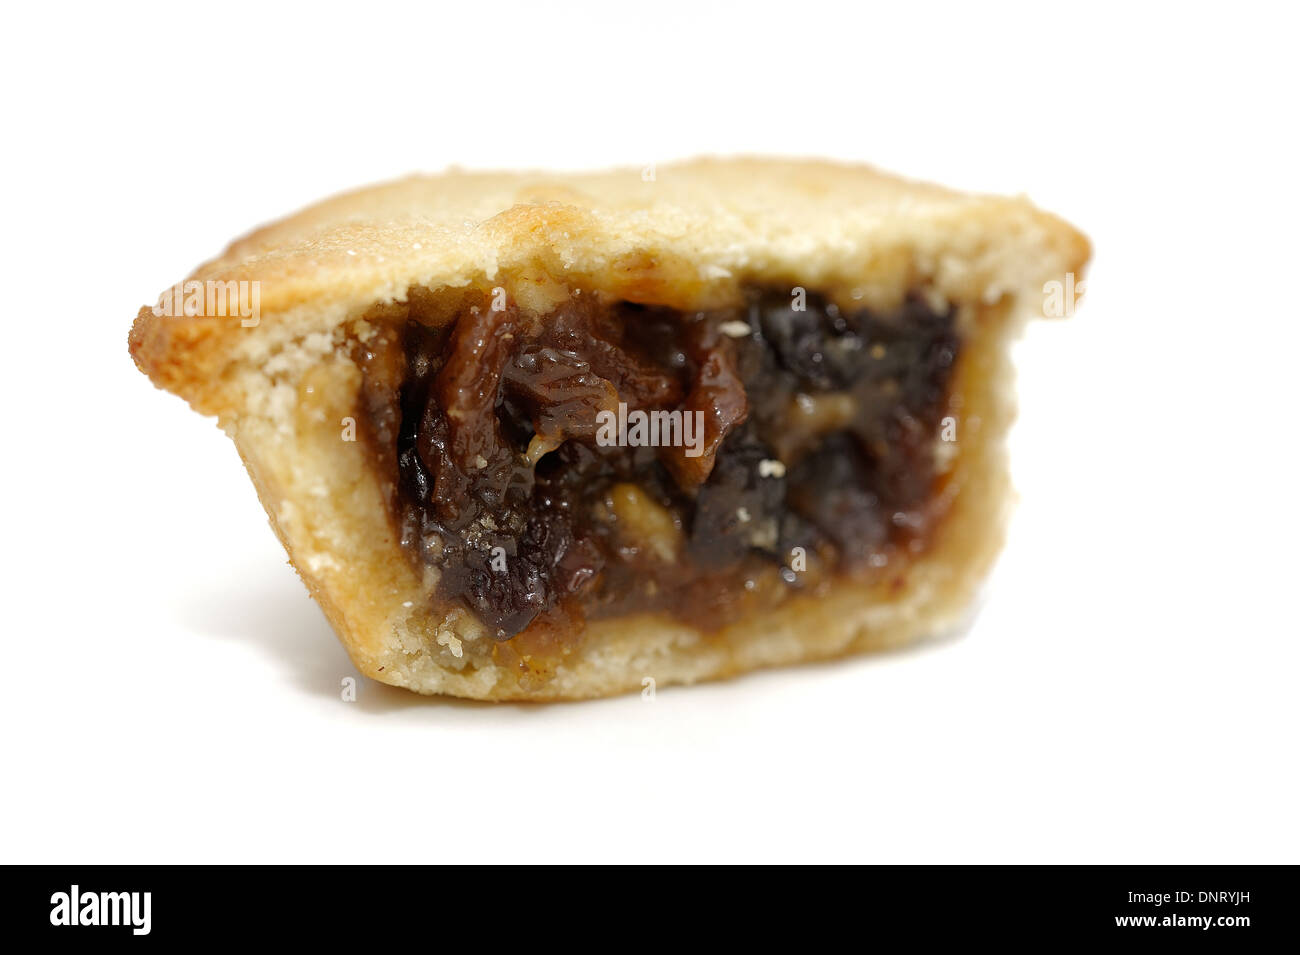 A festive Christmas mince pie cut in half to show the generous filling inside. - Stock Image